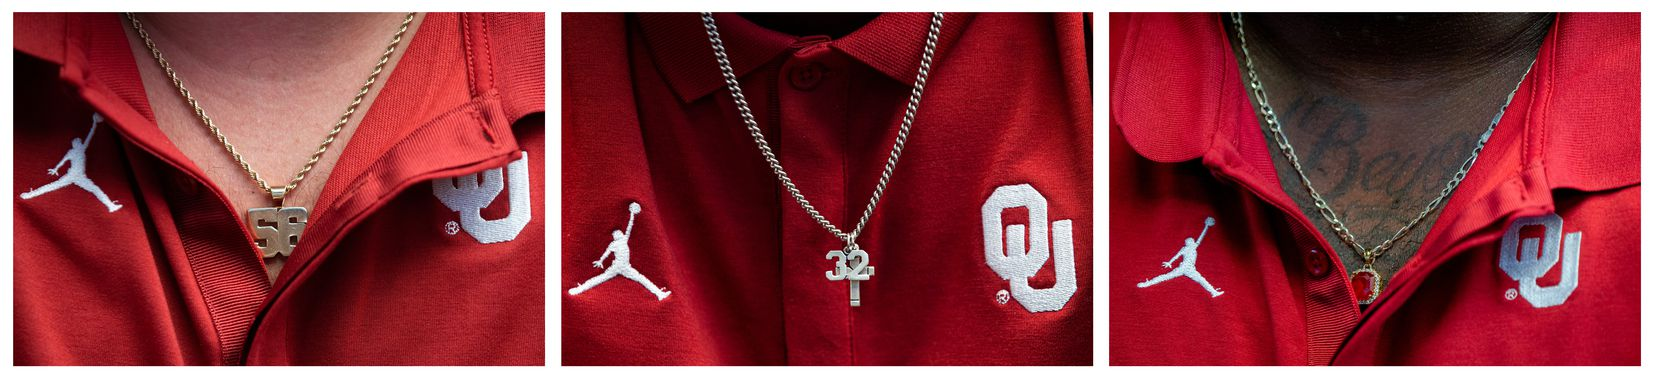 From left, University of Oklahoma players Creed Humphrey,  CeeDee Lamb, and Neville Gallimore wear necklaces during the Big 12 Conference Media Days event at the AT&T Stadium in Arlington on July 16, 2019.